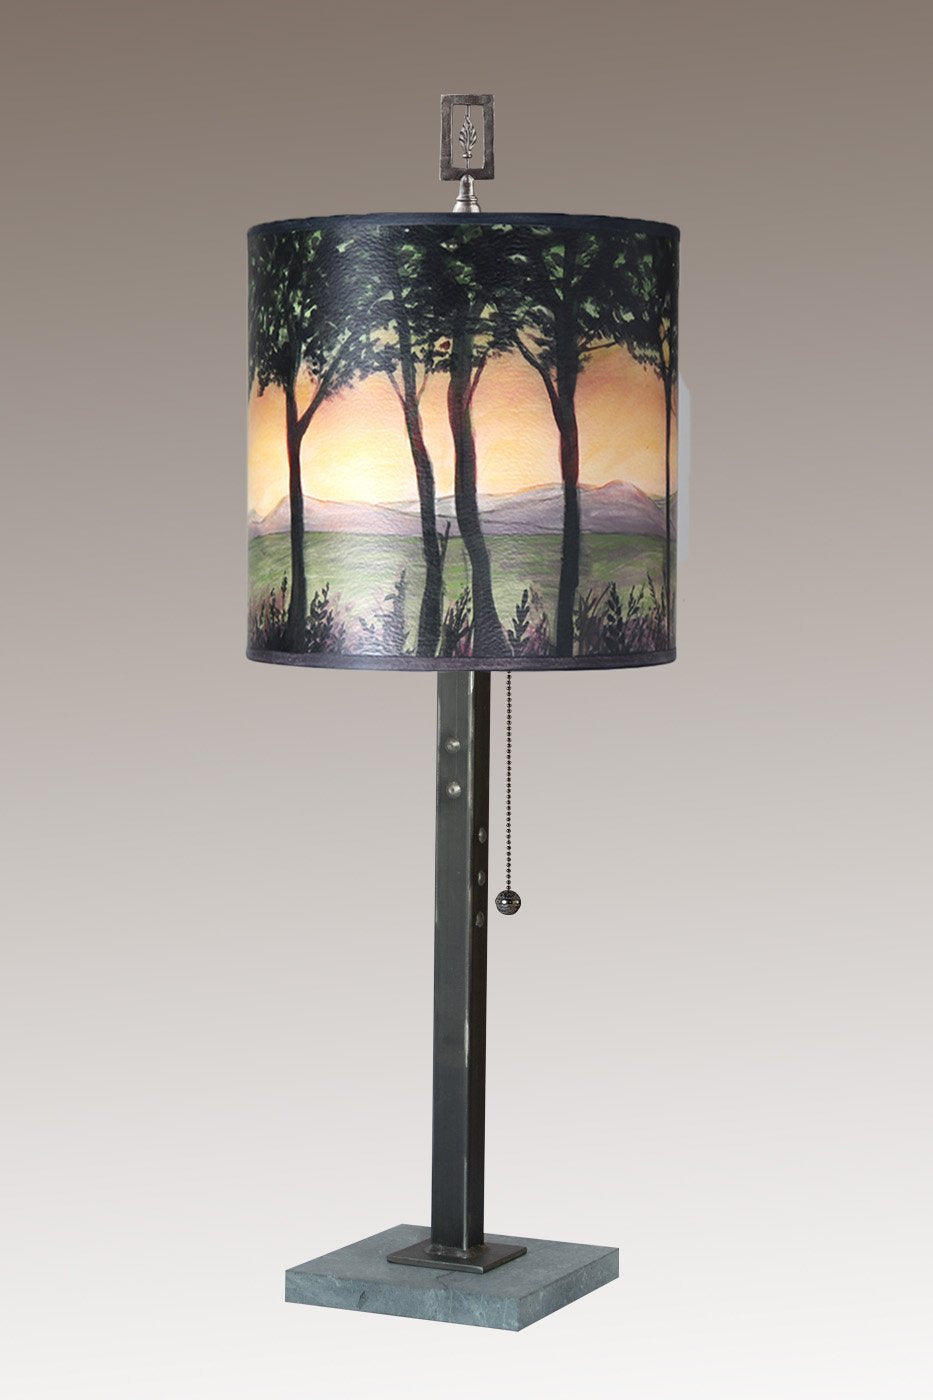 Steel Table Lamp on Marble with Medium Drum Shade in Dawn